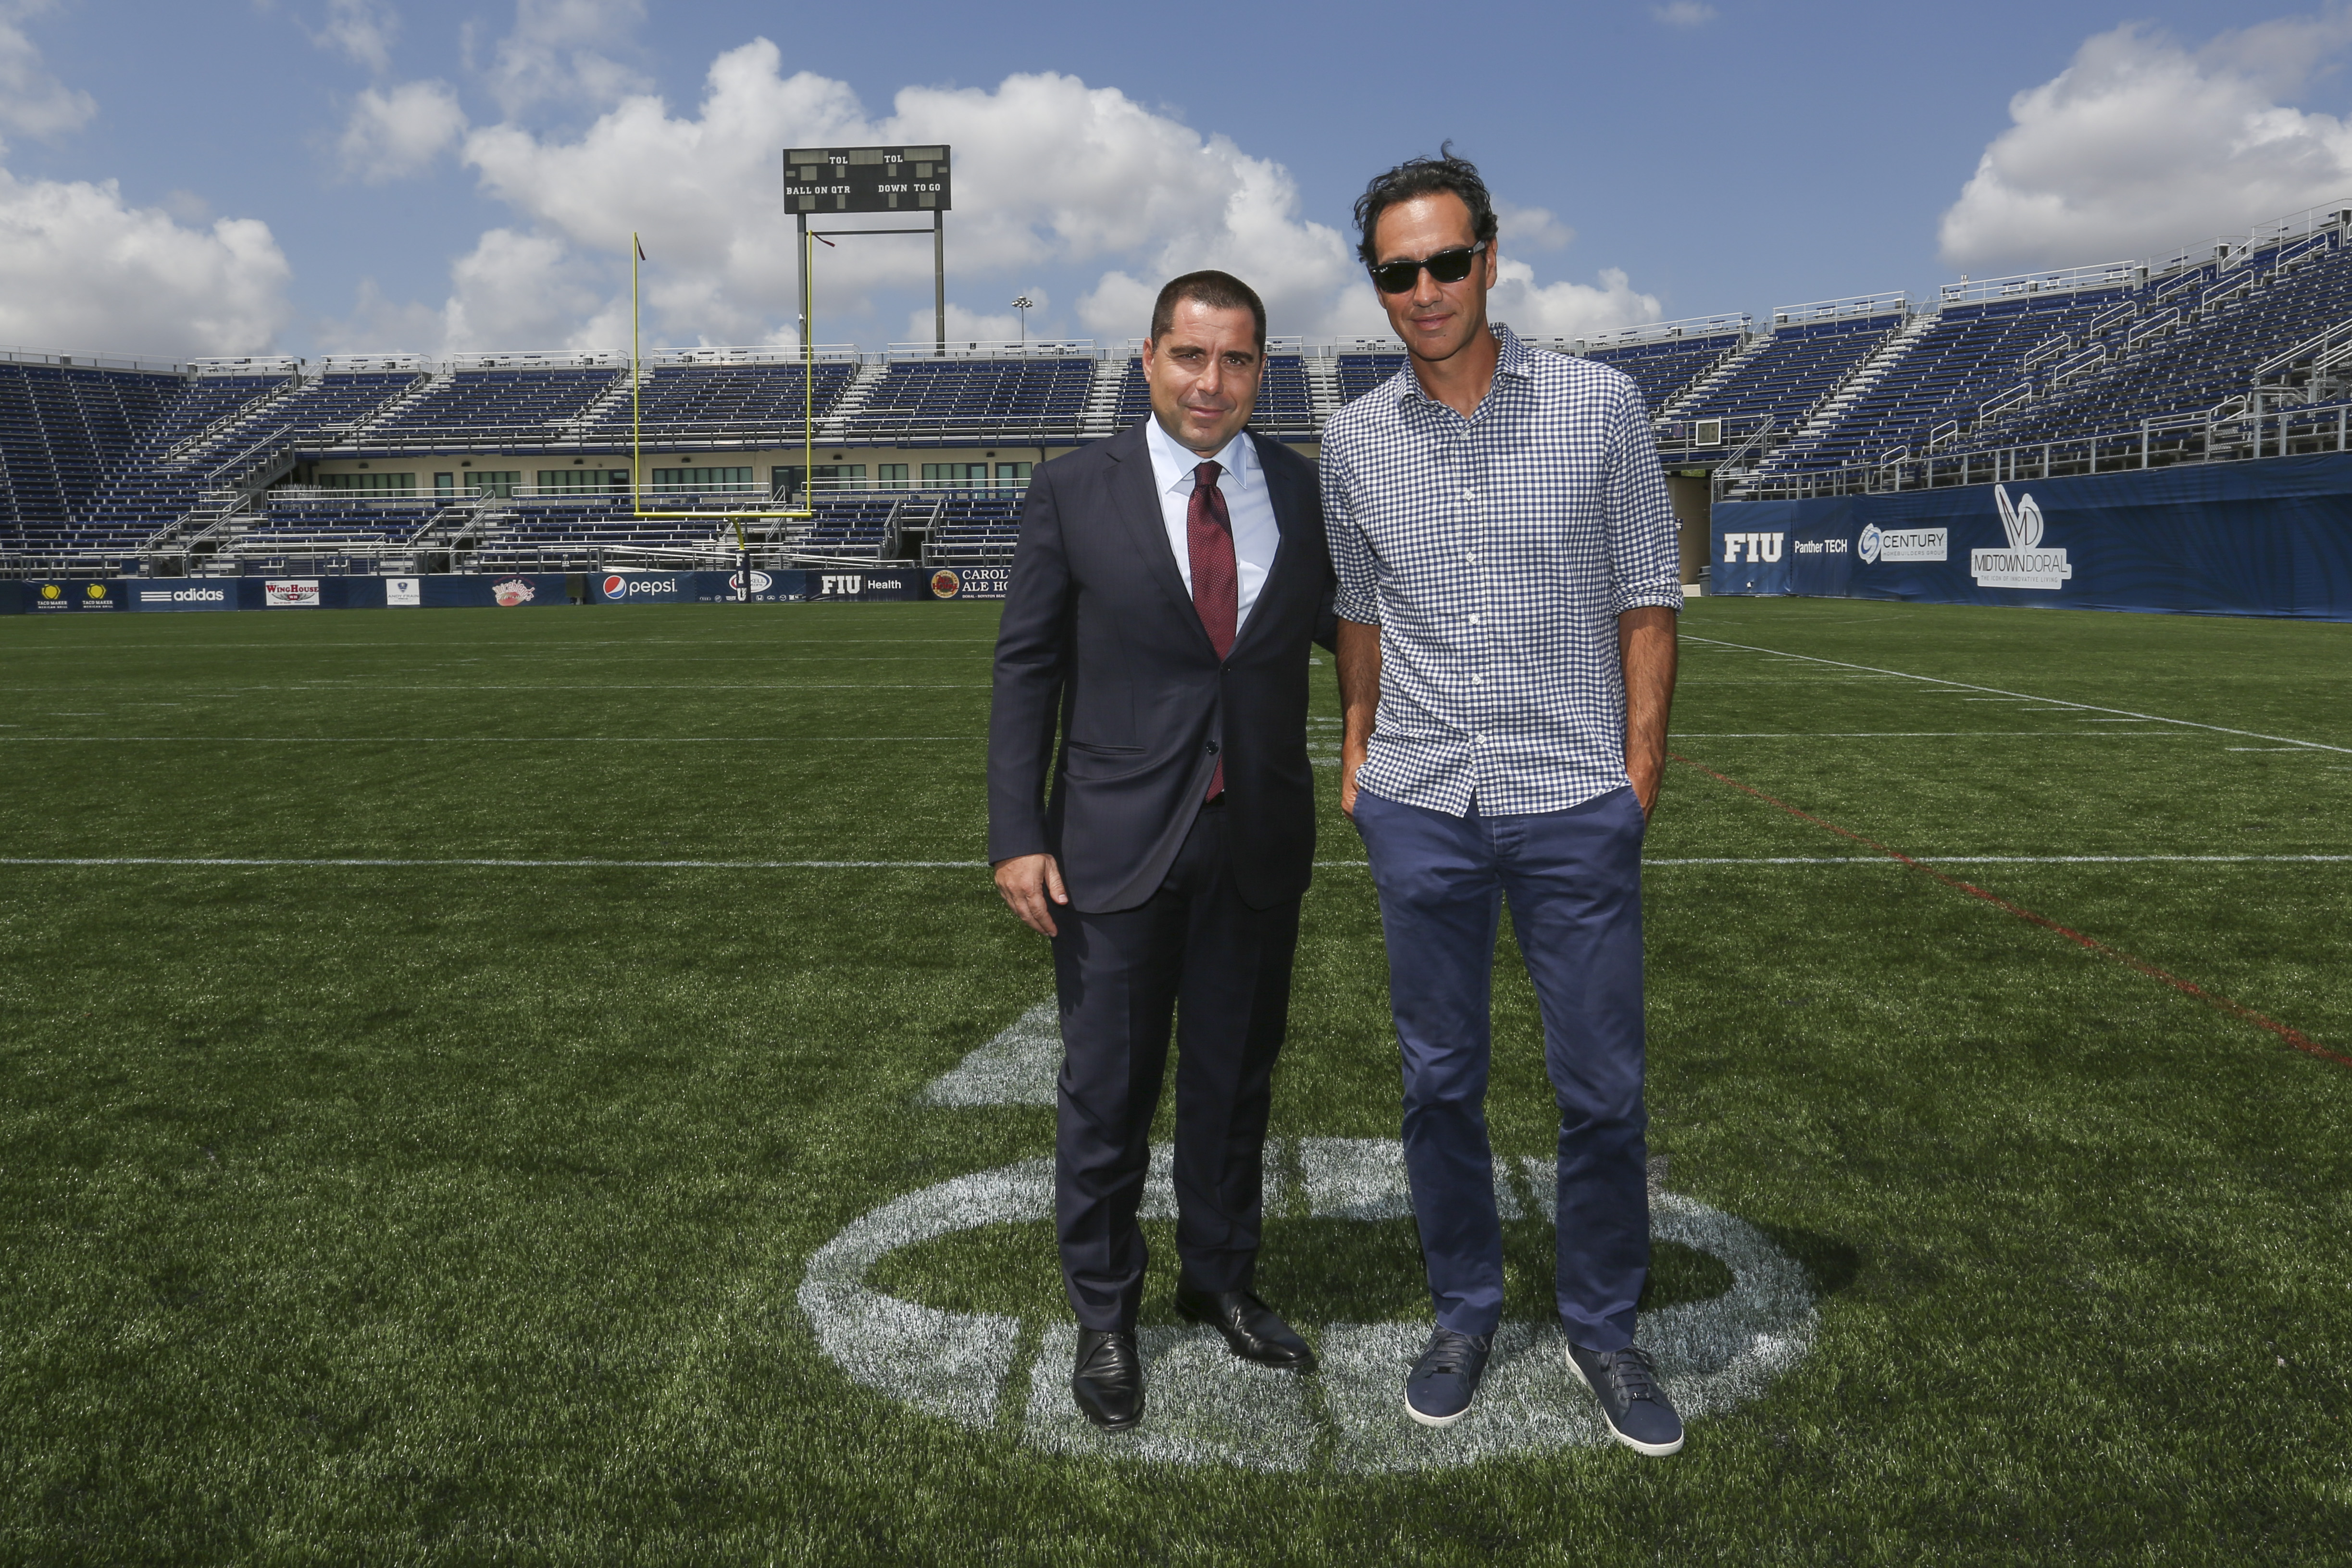 Riccardo Silva and Alessandro Nesta at The Riccardo Silva Stadium